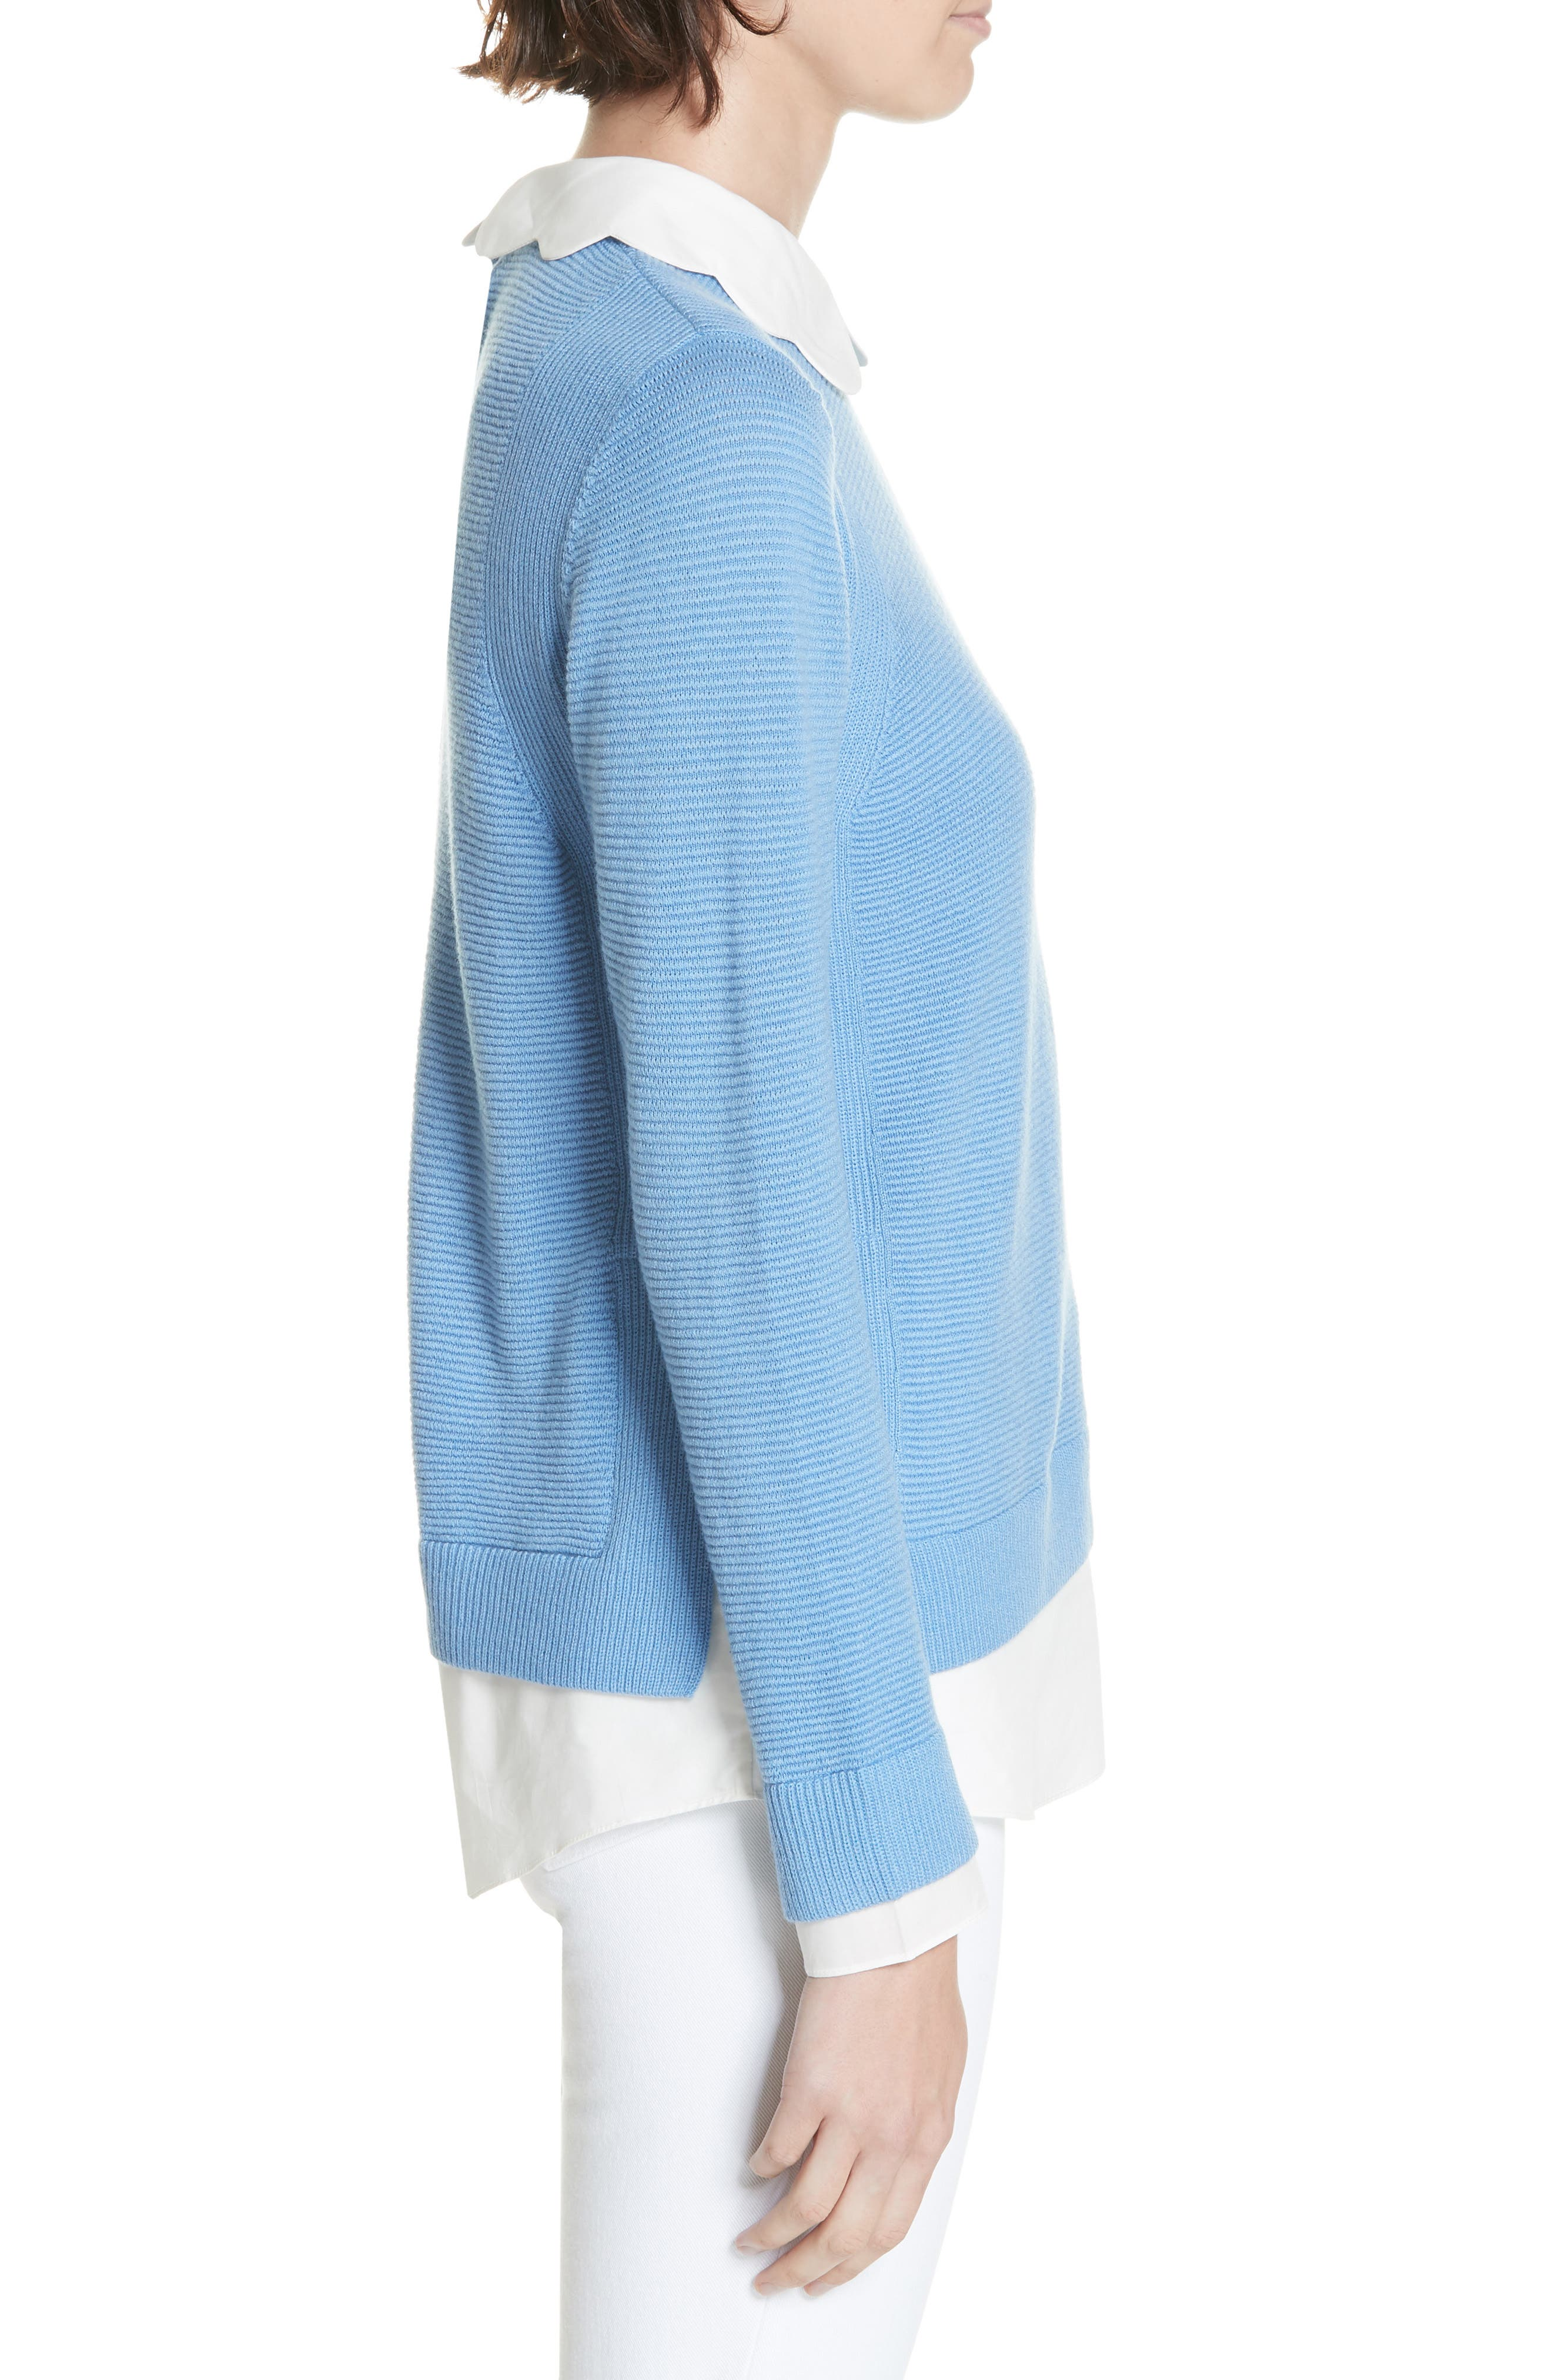 Bronwen Scalloped Collar Sweater,                             Alternate thumbnail 3, color,                             424